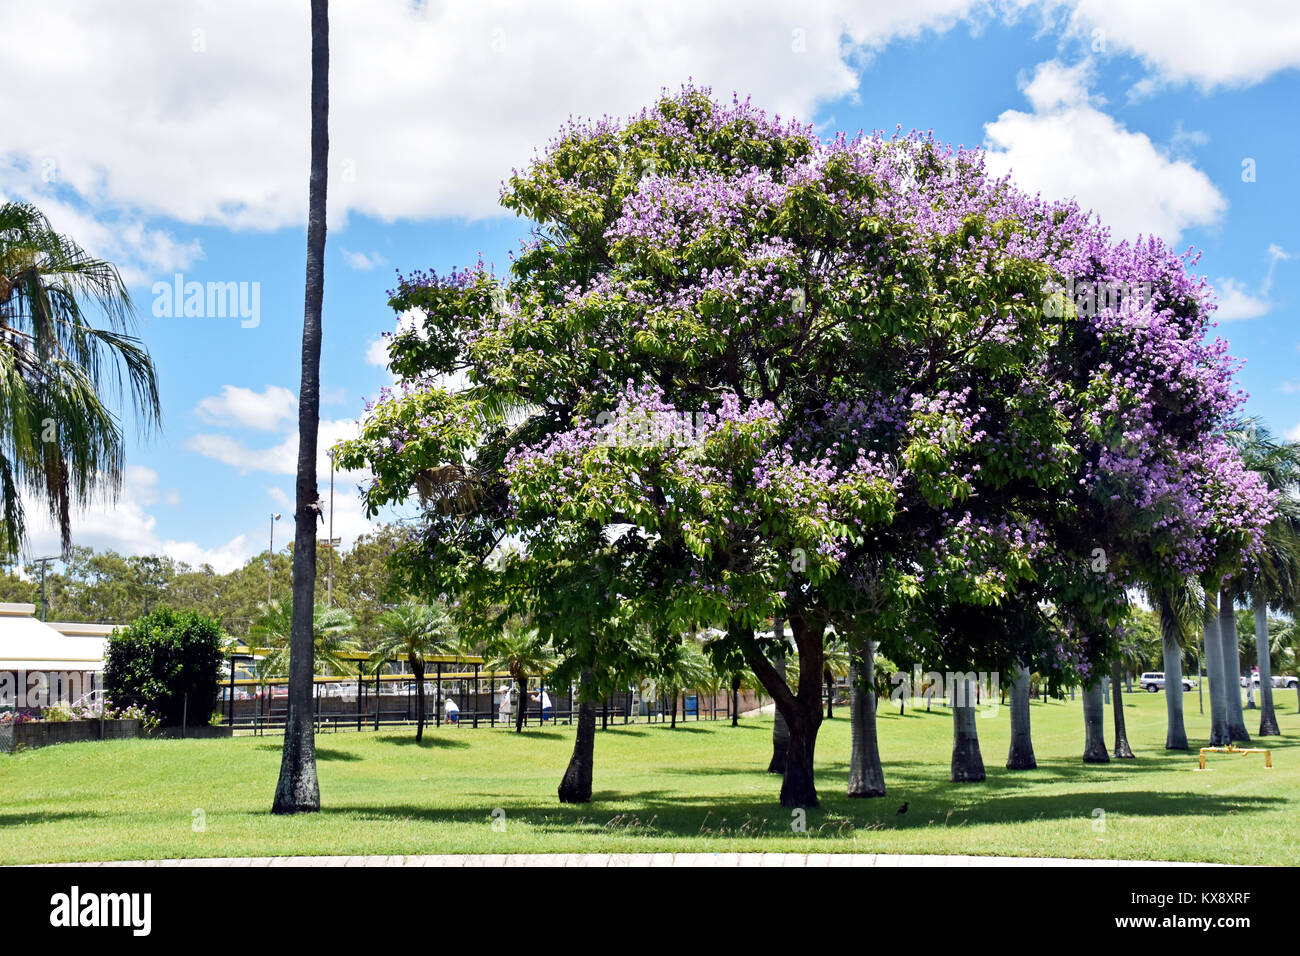 AVENUE OF PINK Crepe myrtle trees Stock Photo: 171071027 - Alamy